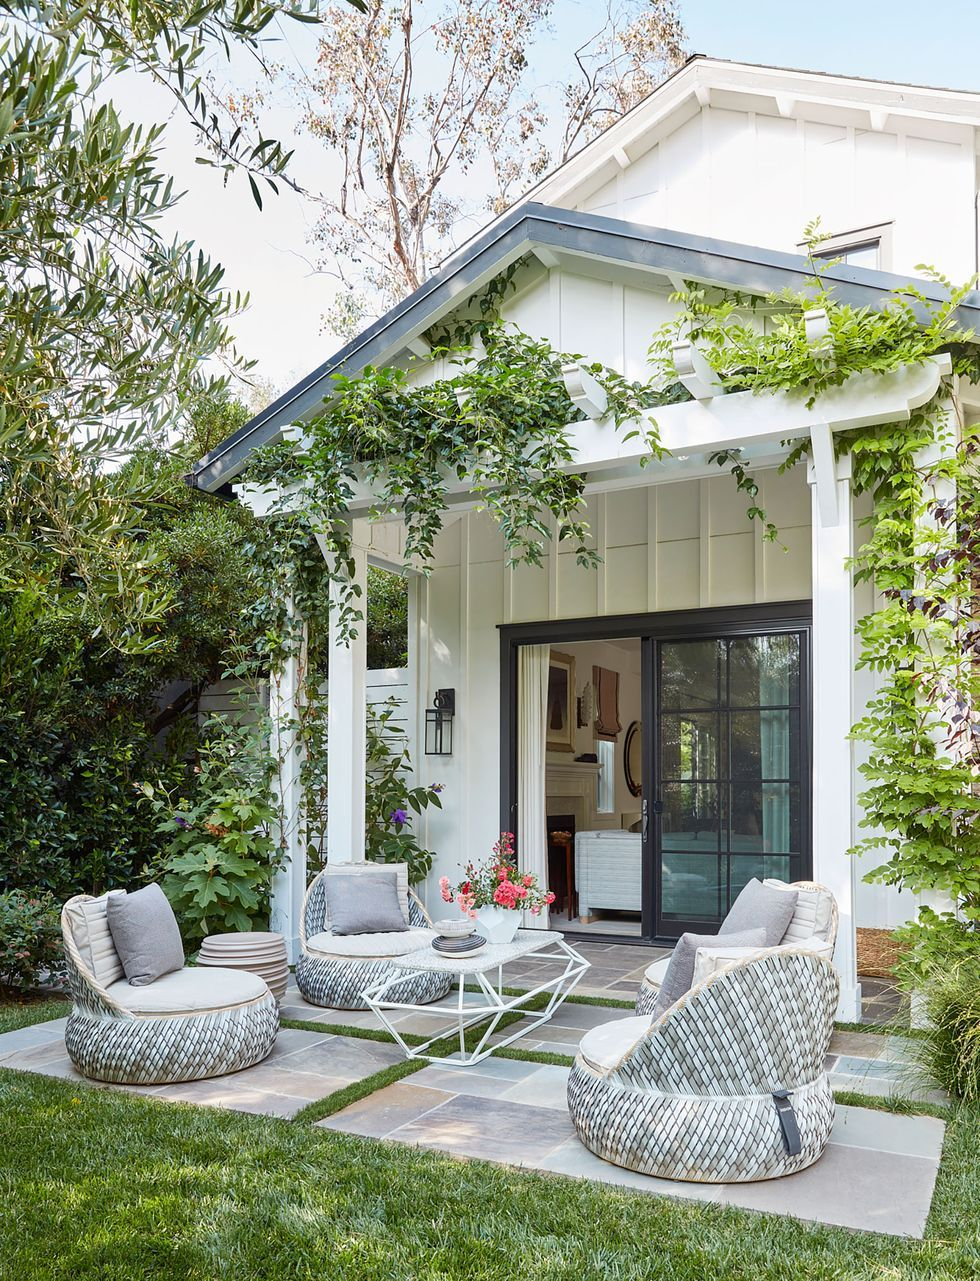 55 Inspiring Patio Ideas Gorgeous Small Patio Designs